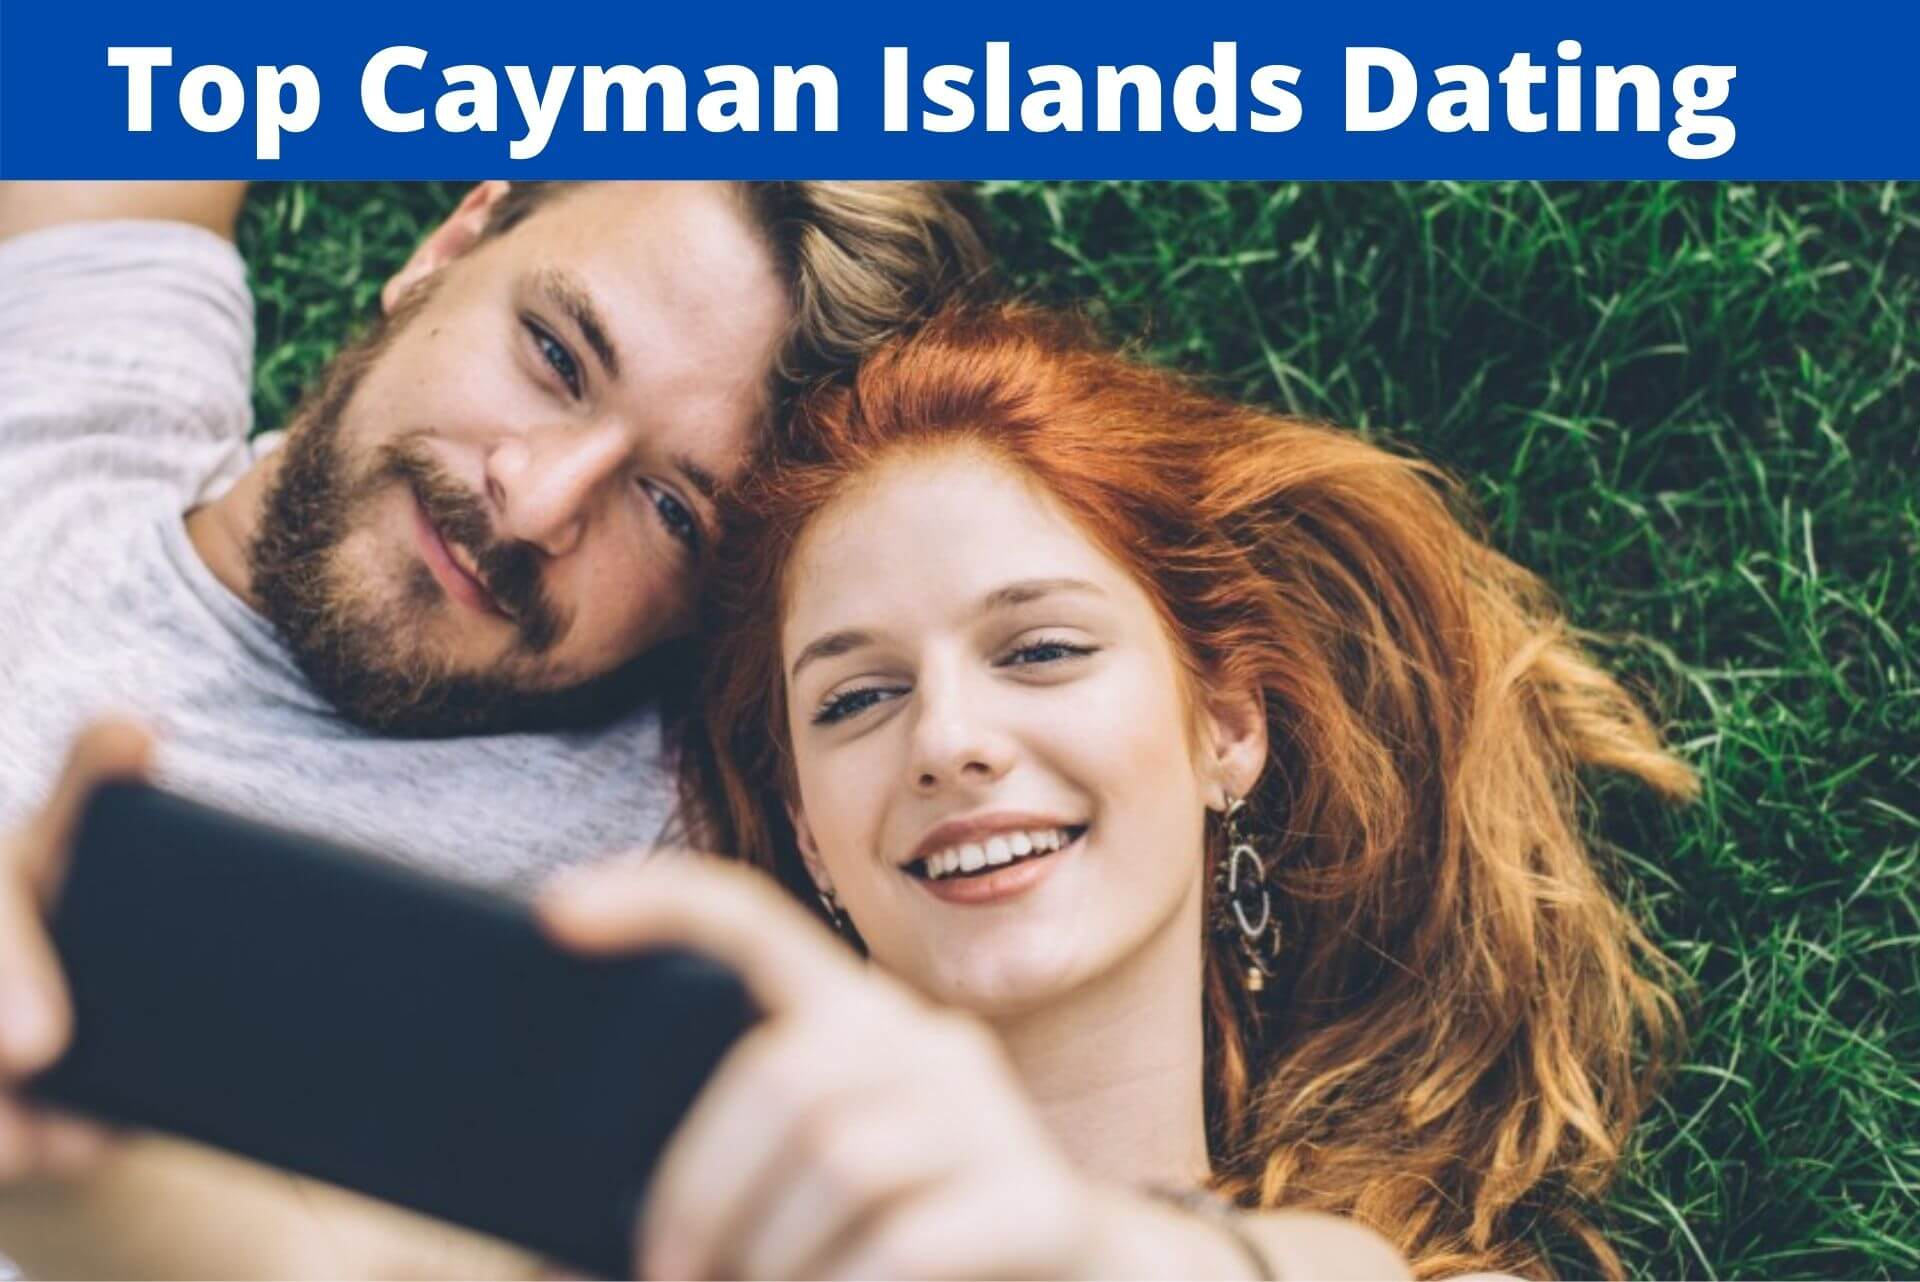 Top 10 Cayman Islands Dating Sites